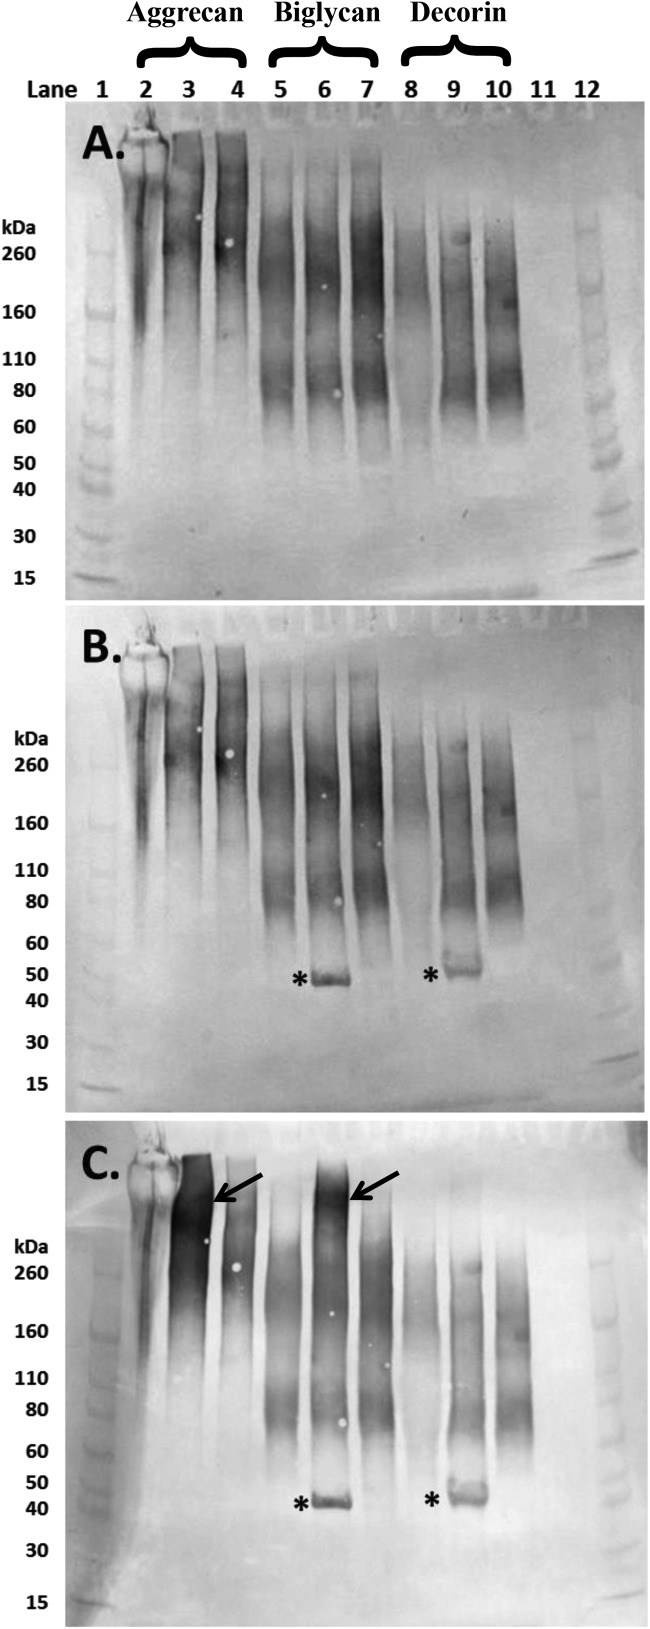 Western blot images of aliquots of purified aggrecan isolated from a human intervertebral disc (lanes 2–4), and the commercially sourced 'biglycan' (lanes 5–7) and 'decorin' (lanes 8–10) following separation on 4–12% Bis-Tris gel PGs in lanes 2, 5 and 8 were undigested whereas those in lanes 3, 6 and 9 and 4, 7 and 10 had been digested with chondroitinase ABC and chondroitinase AC respectively (both 250 mU/ml). Membranes were probed sequentially with monoclonal antibodies to ( A ) over-sulfated KS heptasaccharides (5D4); ( B ) 4-sulfated unsaturated disaccharide CS neo-epitopes (2B6) and (C ) 6-sulfated unsaturated disaccharide CS neo-epitopes (3B3). Lanes 1 and 12 contain molecular weight standards. The expected molecular weight of the intact core protein of both biglycan and decorin is approximately 45 kDa (*). Aggrecan bands were particularly prominent in lane 3 (4C) following chondrointase ABC treatment (arrow), similar bands were seen in the 'biglycan' preparation (lane 6, arrow).